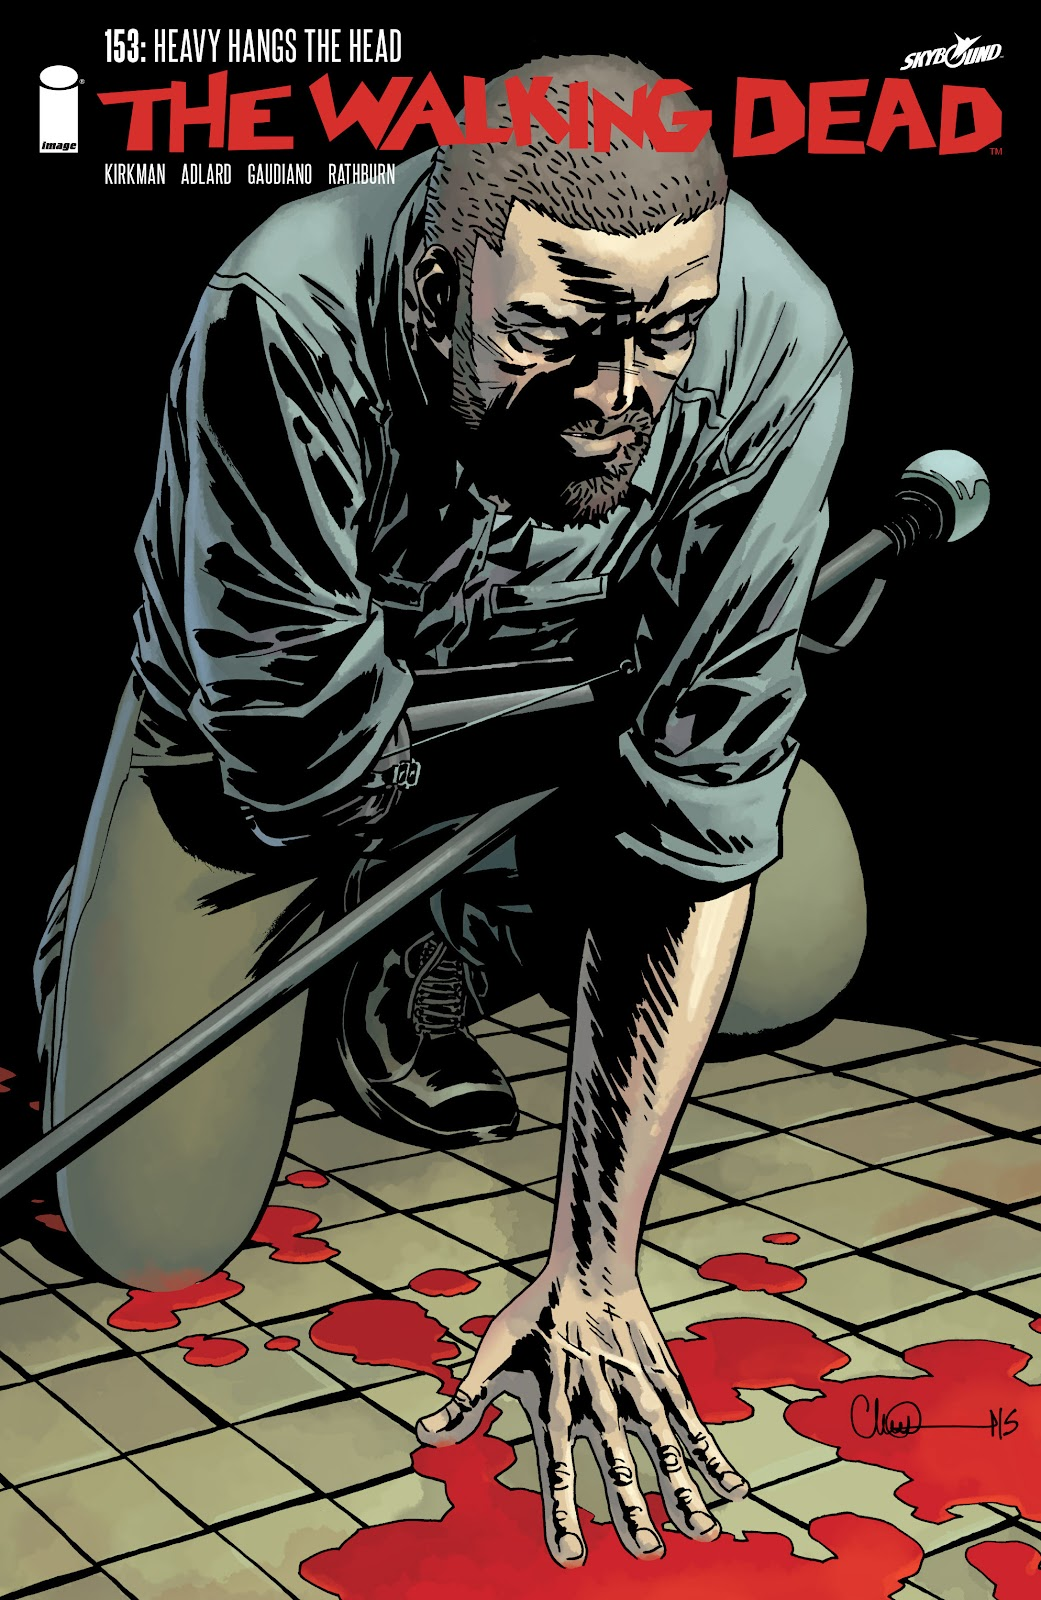 The Walking Dead Issue #153 Page 1